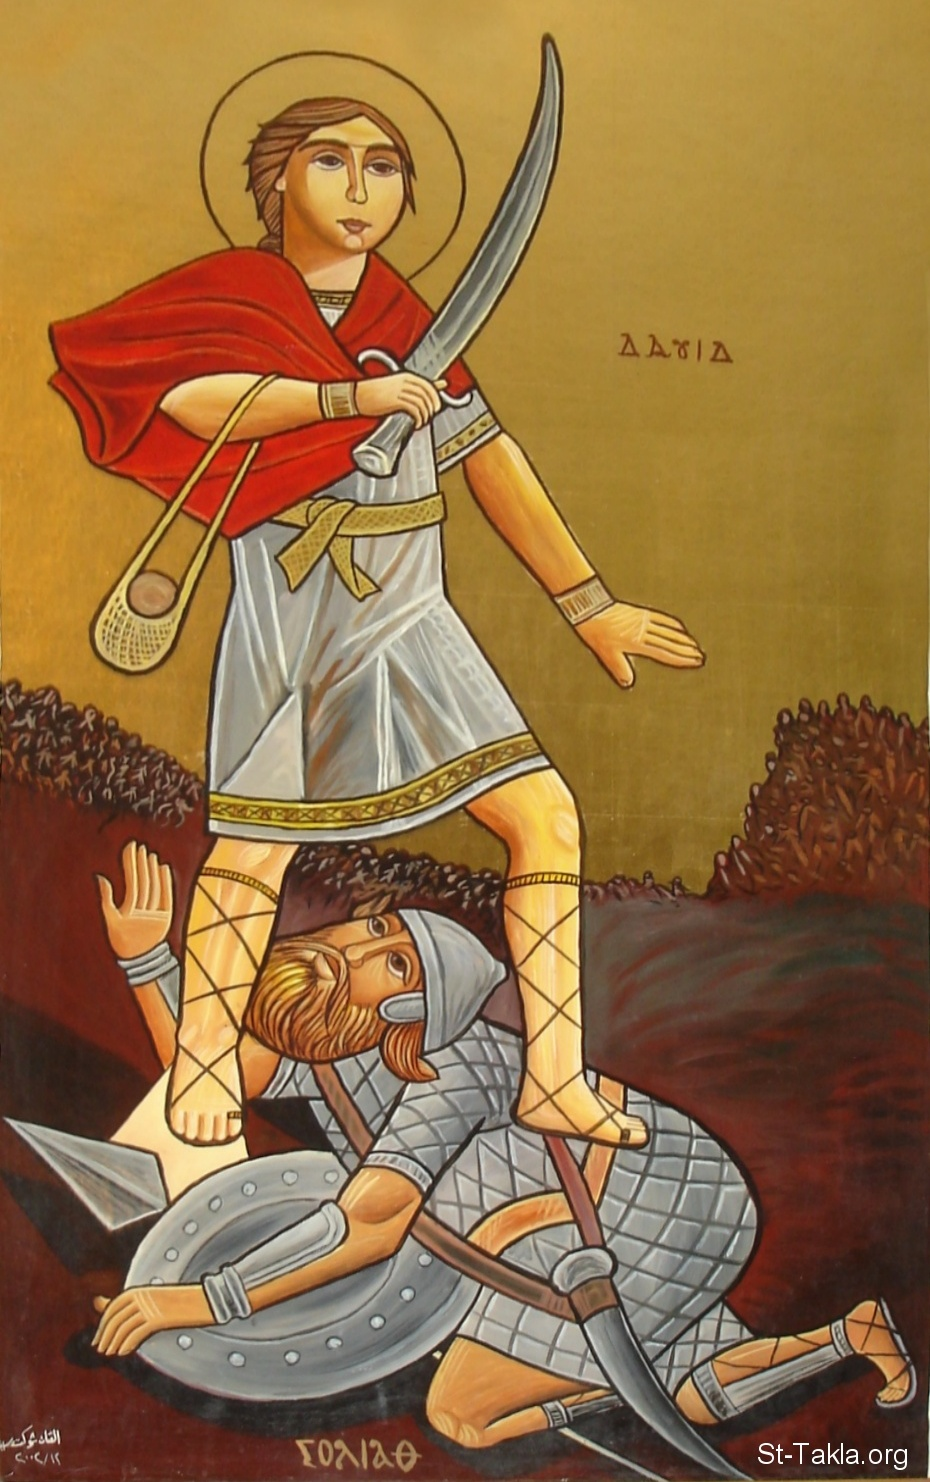 St-Takla.org         Image: Saint David the king with Goliath, modern Coptic art icon by Shawkat Seif Sadek, 2002, at St. Mark's chapel (inside St. Mark's Cathedral), Alexandria, Egypt ����: ������ ���� ������ ���� ����� �� ������ ����ʡ �� ���� ������ ������ѡ ���� ������ ������ ���� ��� ���ޡ 2002� �� ������� ������� ���������� ������ ���� ������ �����������